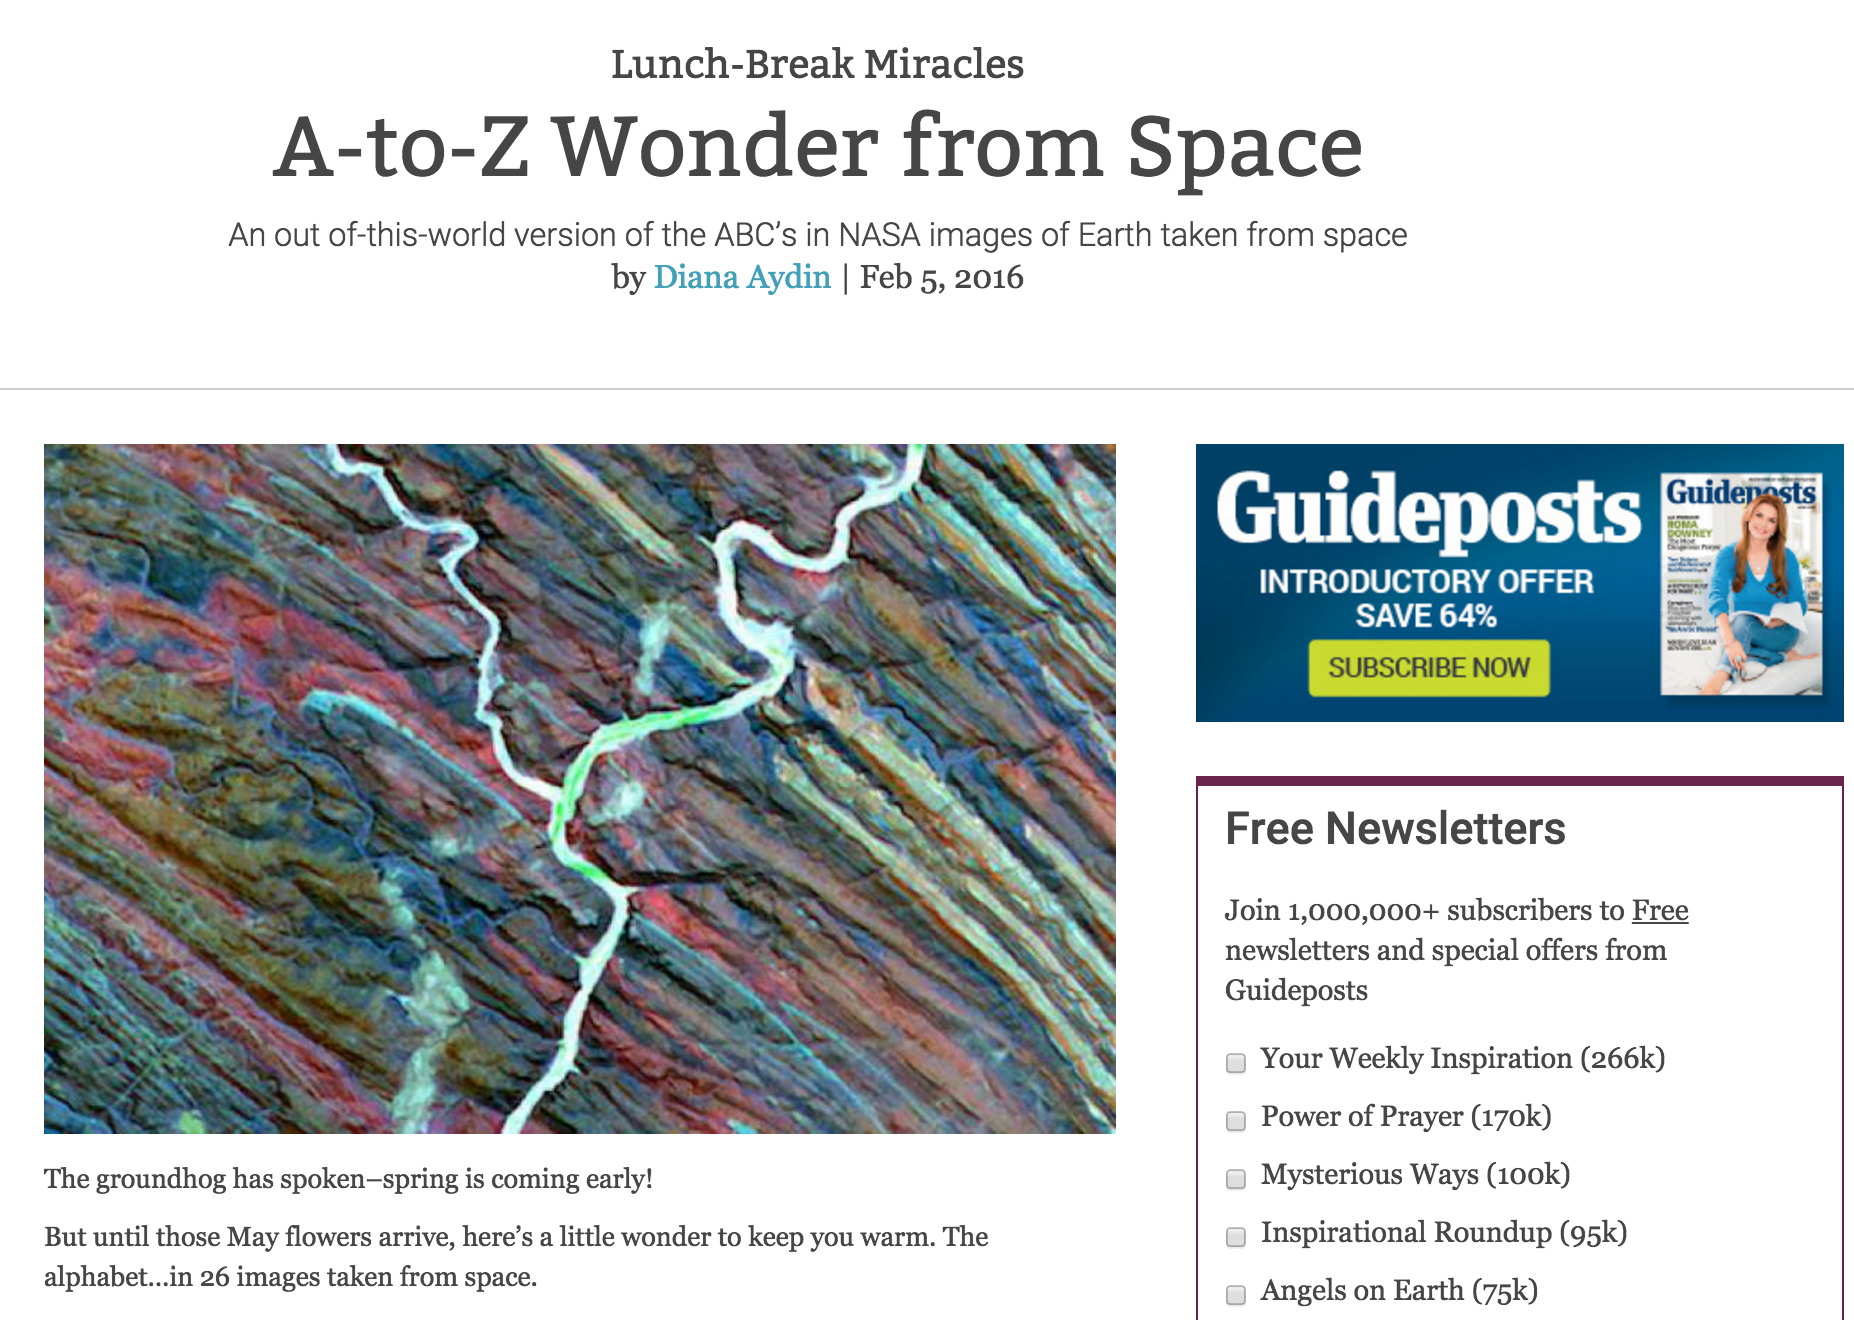 A-to-Z Wonder from Space